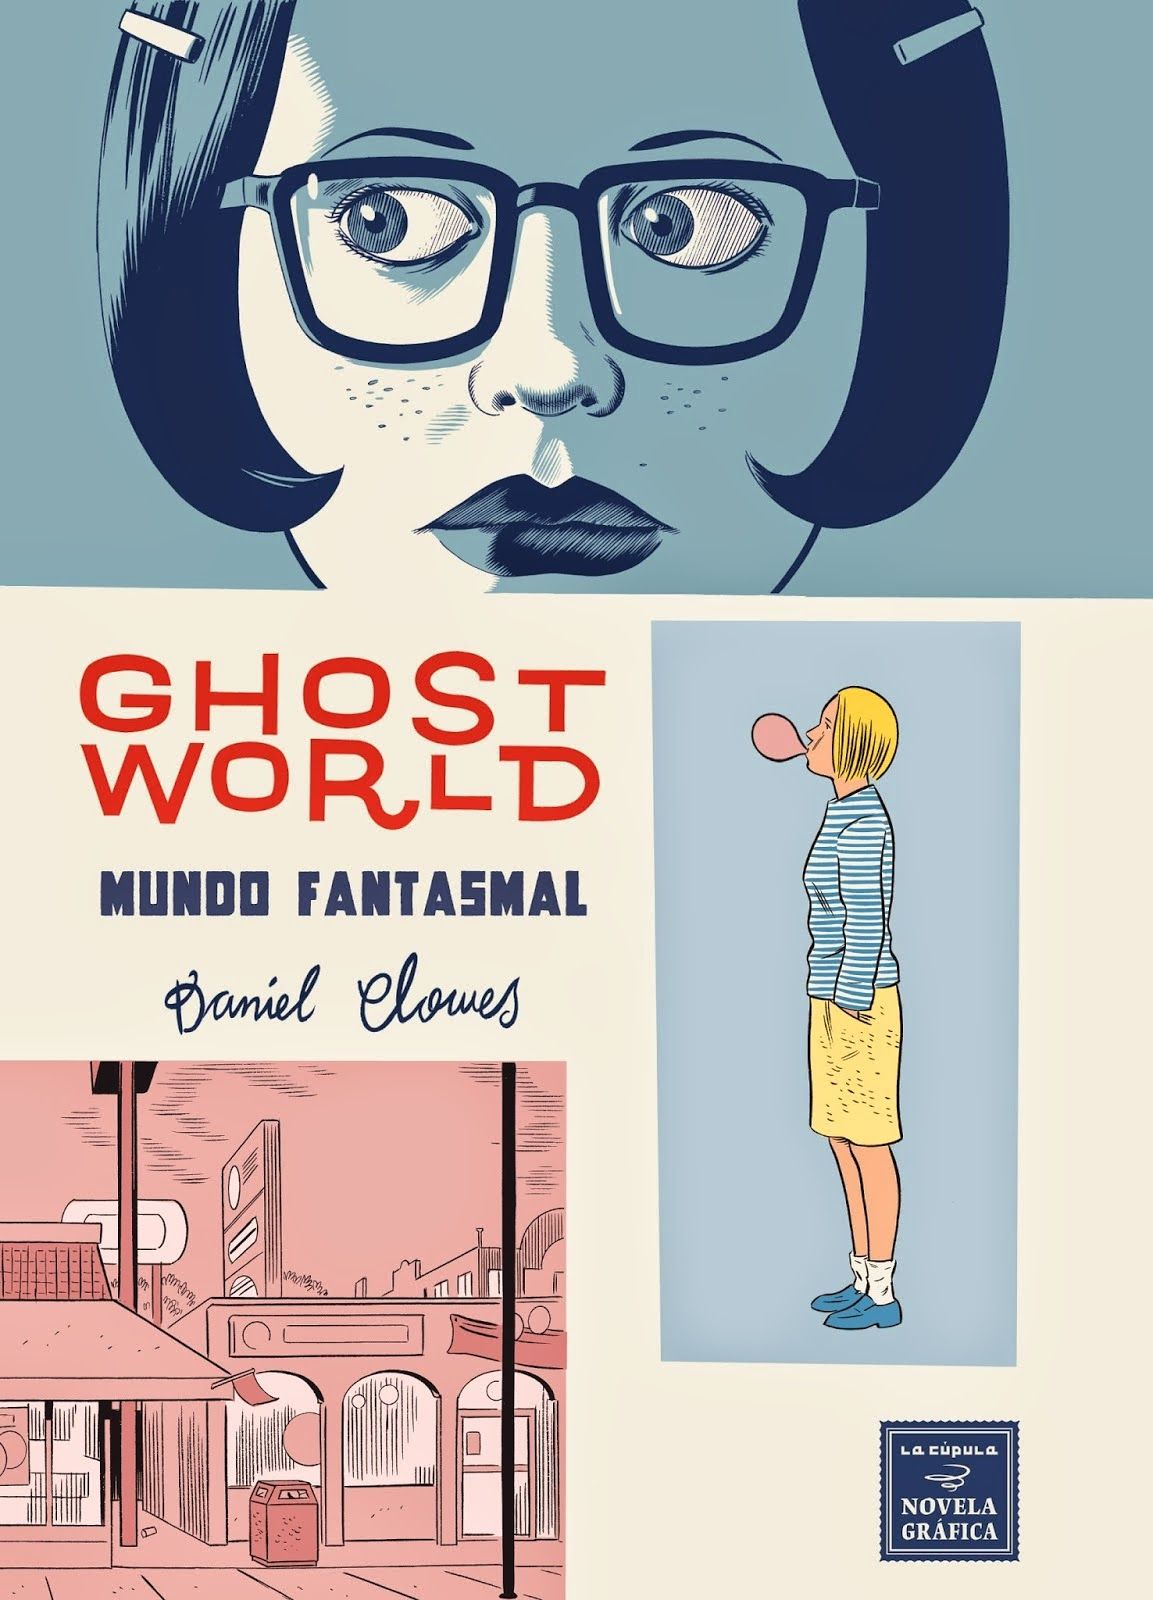 La Cupula Libro Reseña Cómic Ghost World Mundo Fantasmal Daniel Clowes